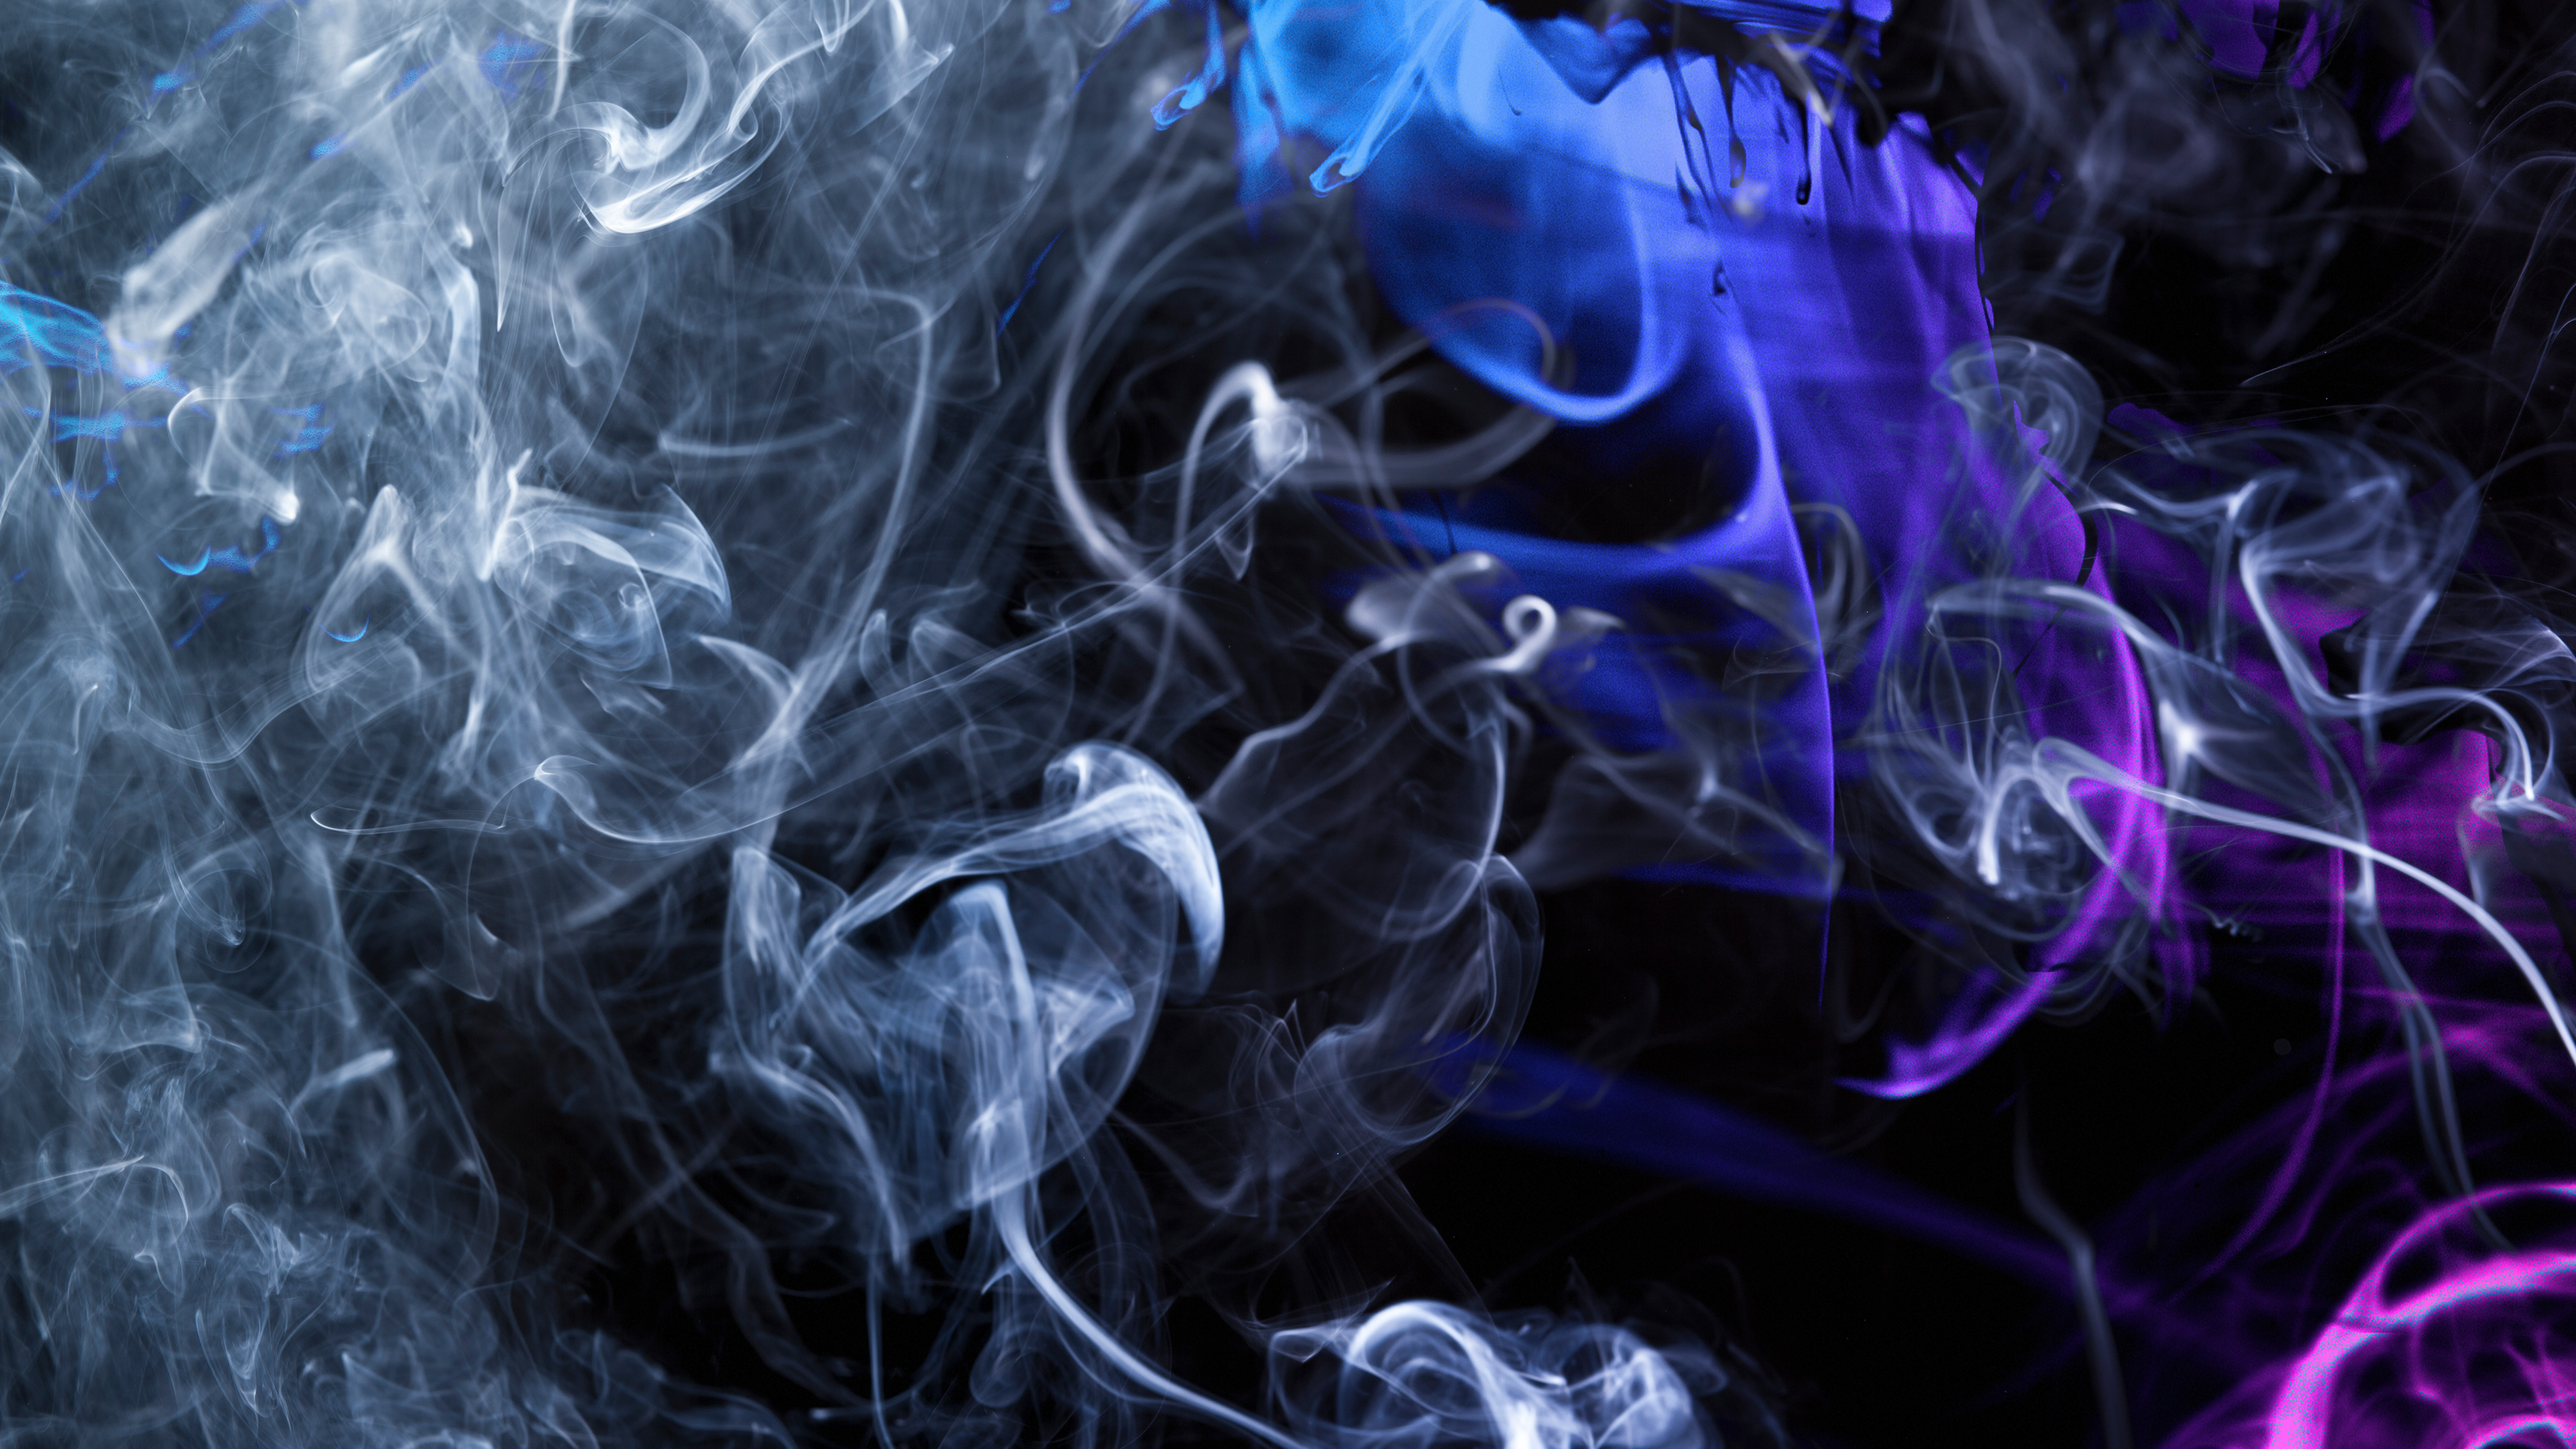 4k Abstract Smoke Wallpaper Hd